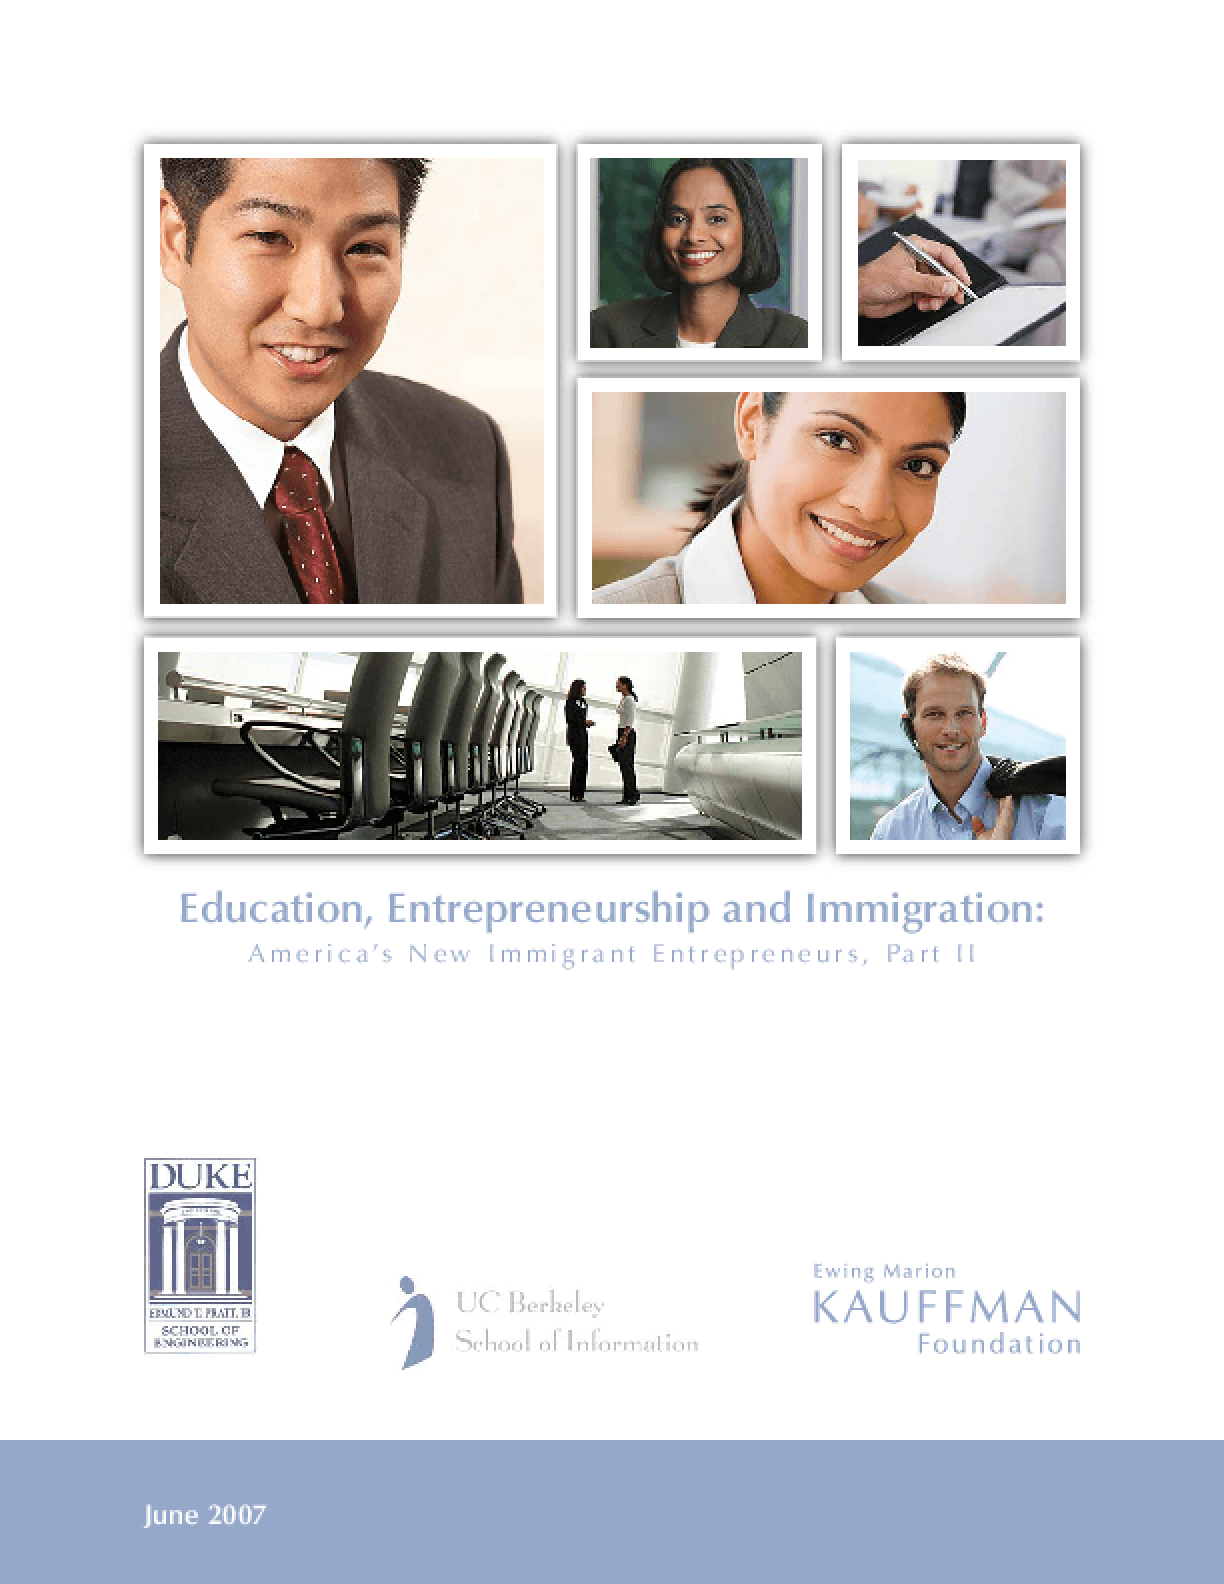 Education, Entrepreneurship and Immigration: America's New Immigrant Entrepreneurs, Part II